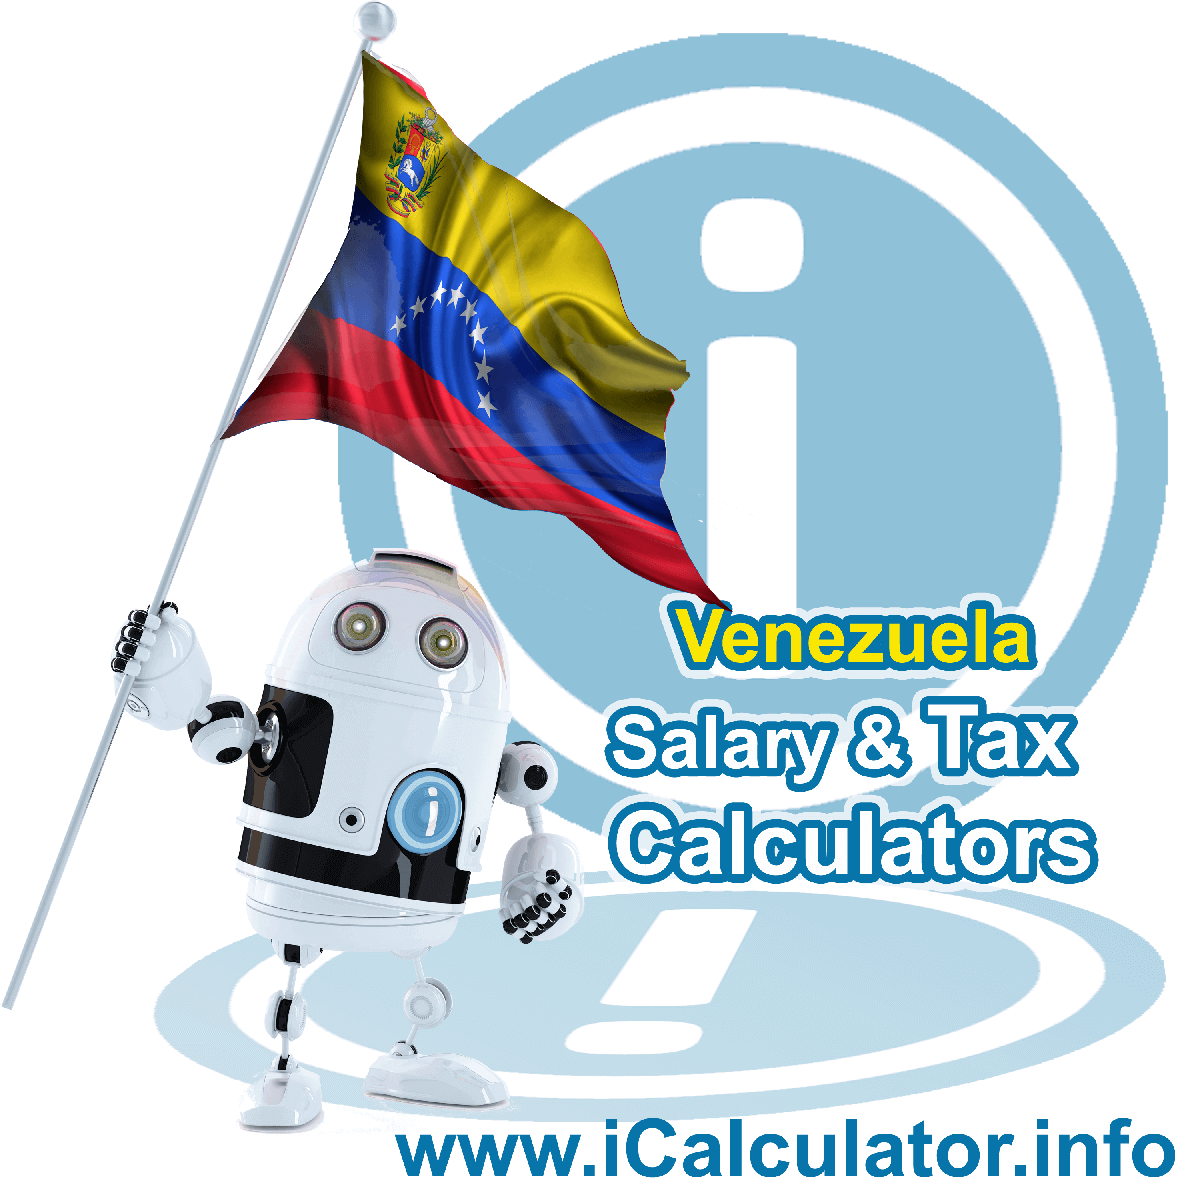 Venezuela Wage Calculator. This image shows the Venezuela flag and information relating to the tax formula for the Venezuela Tax Calculator